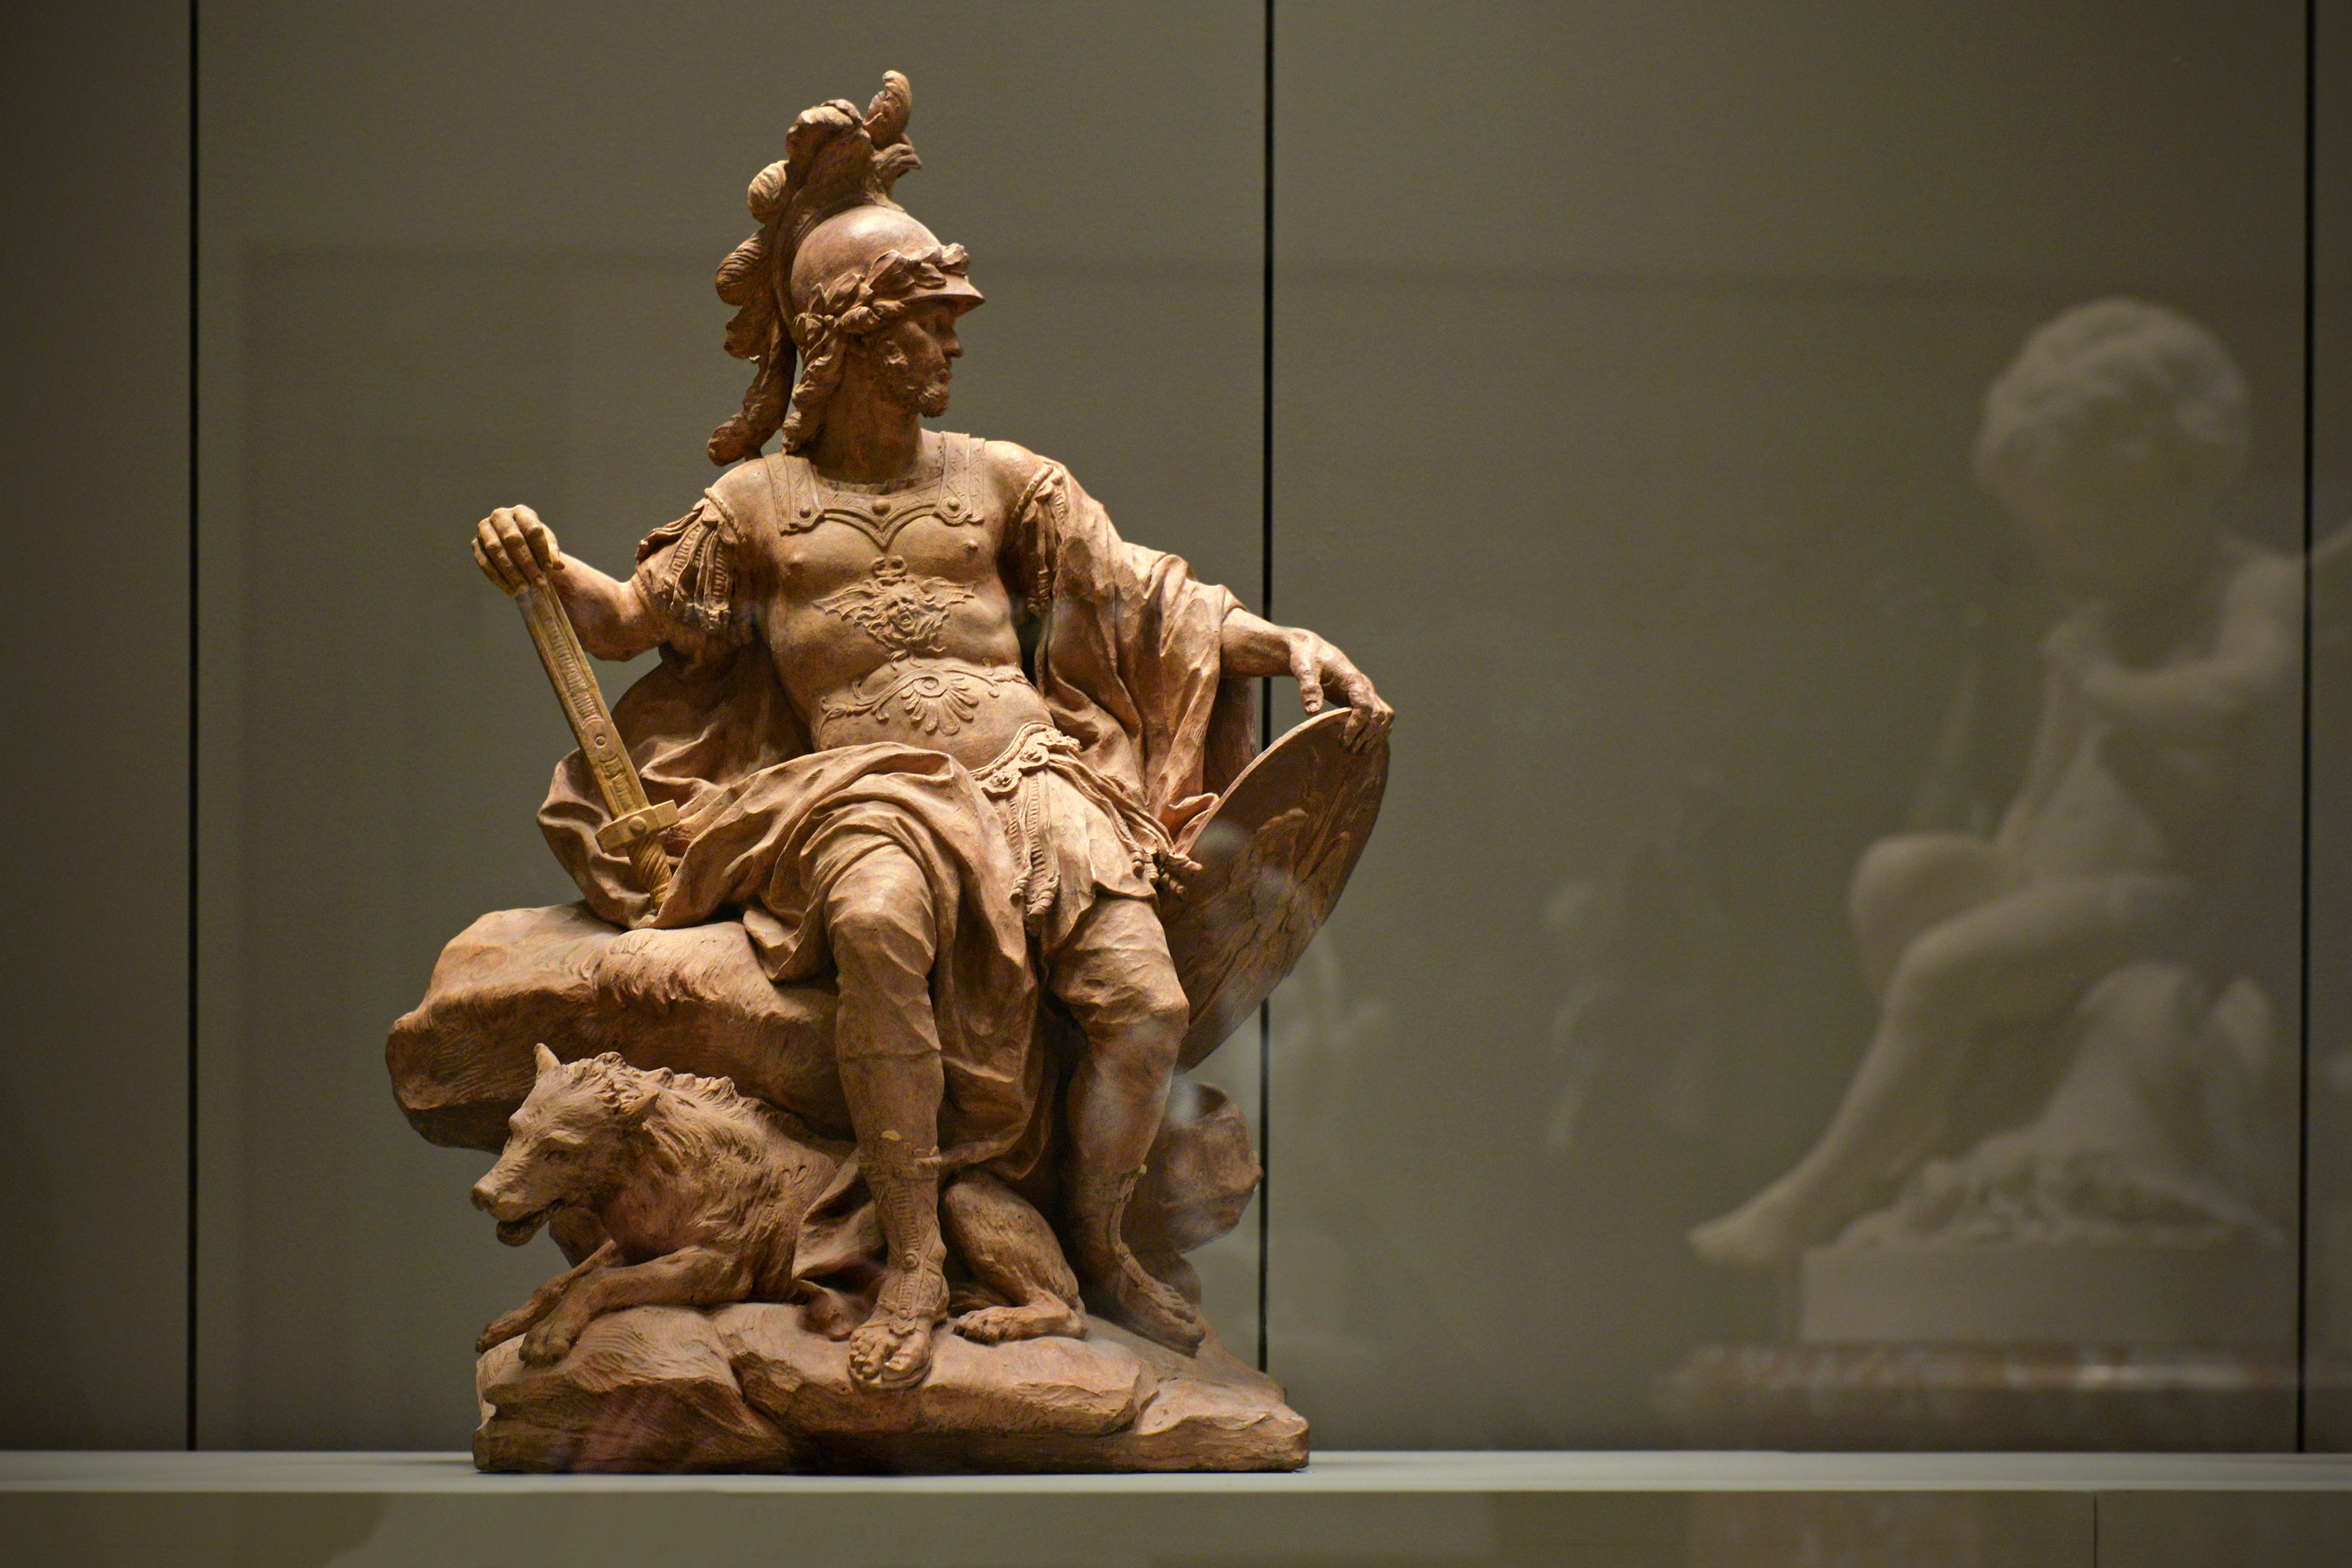 An image of the god Mars from the Louvre.